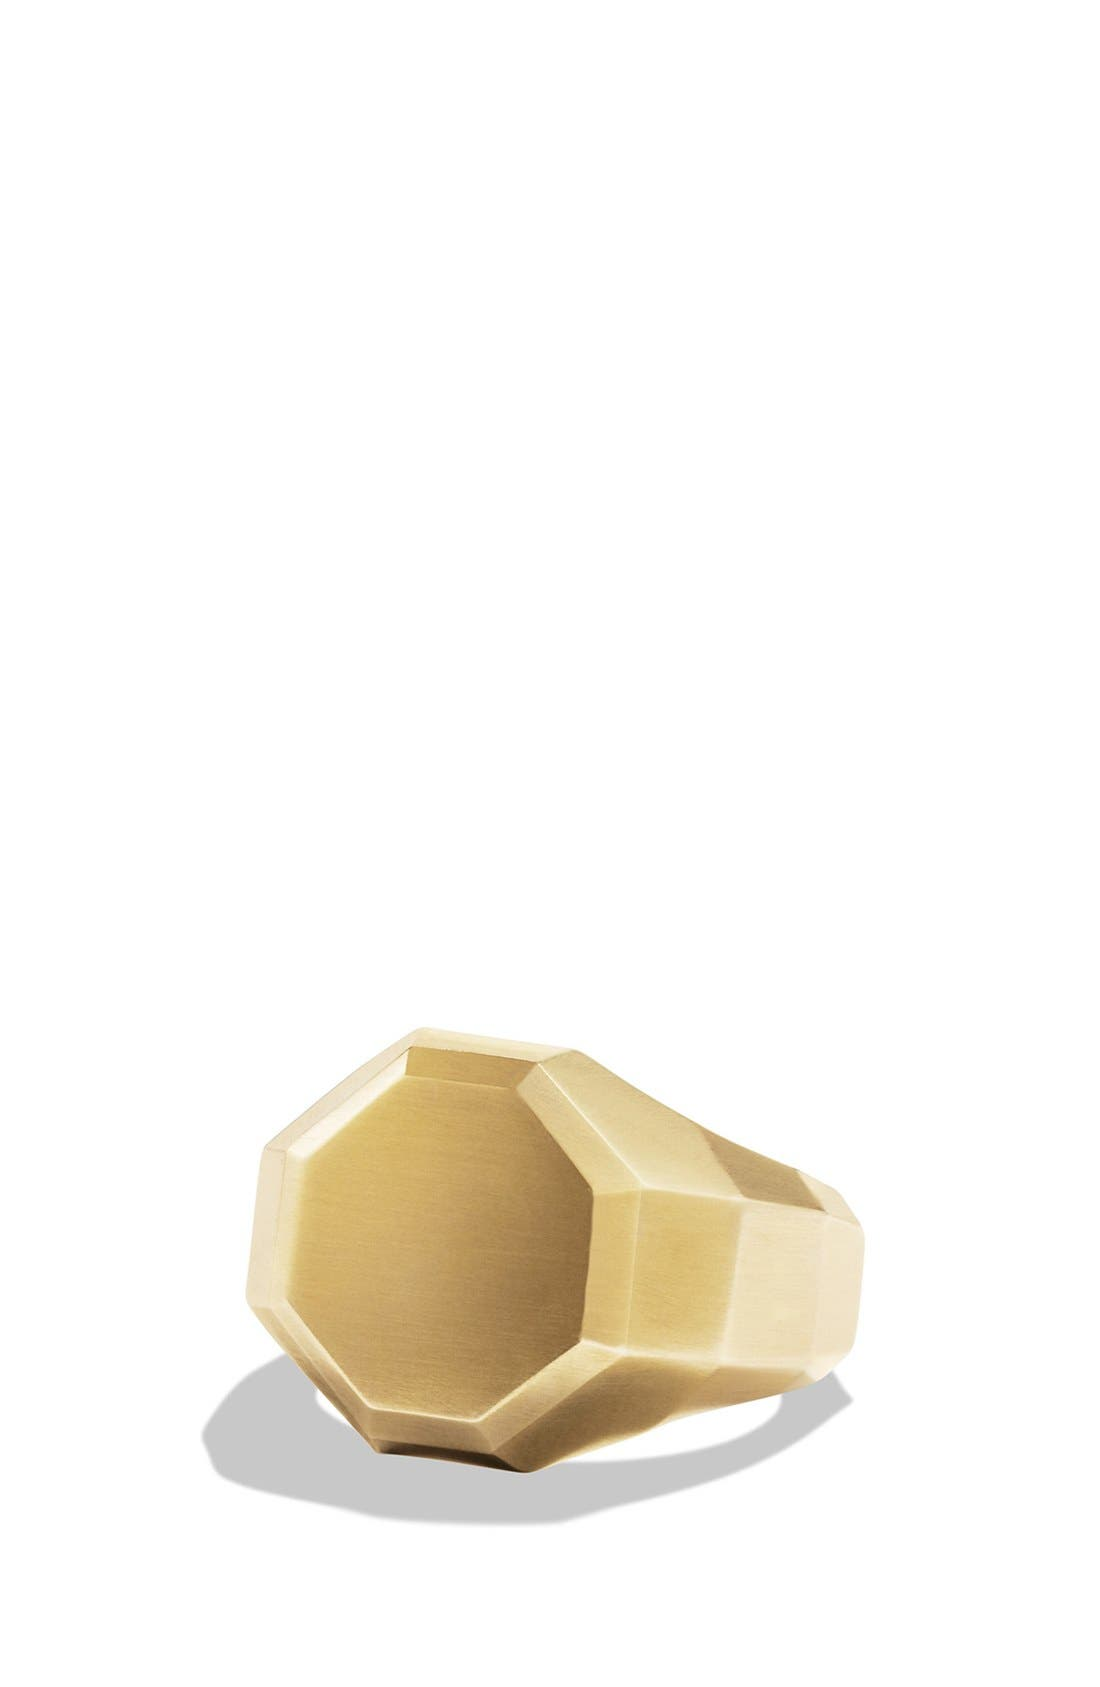 David Yurman 'Faceted' Signet Ring with 18k Gold